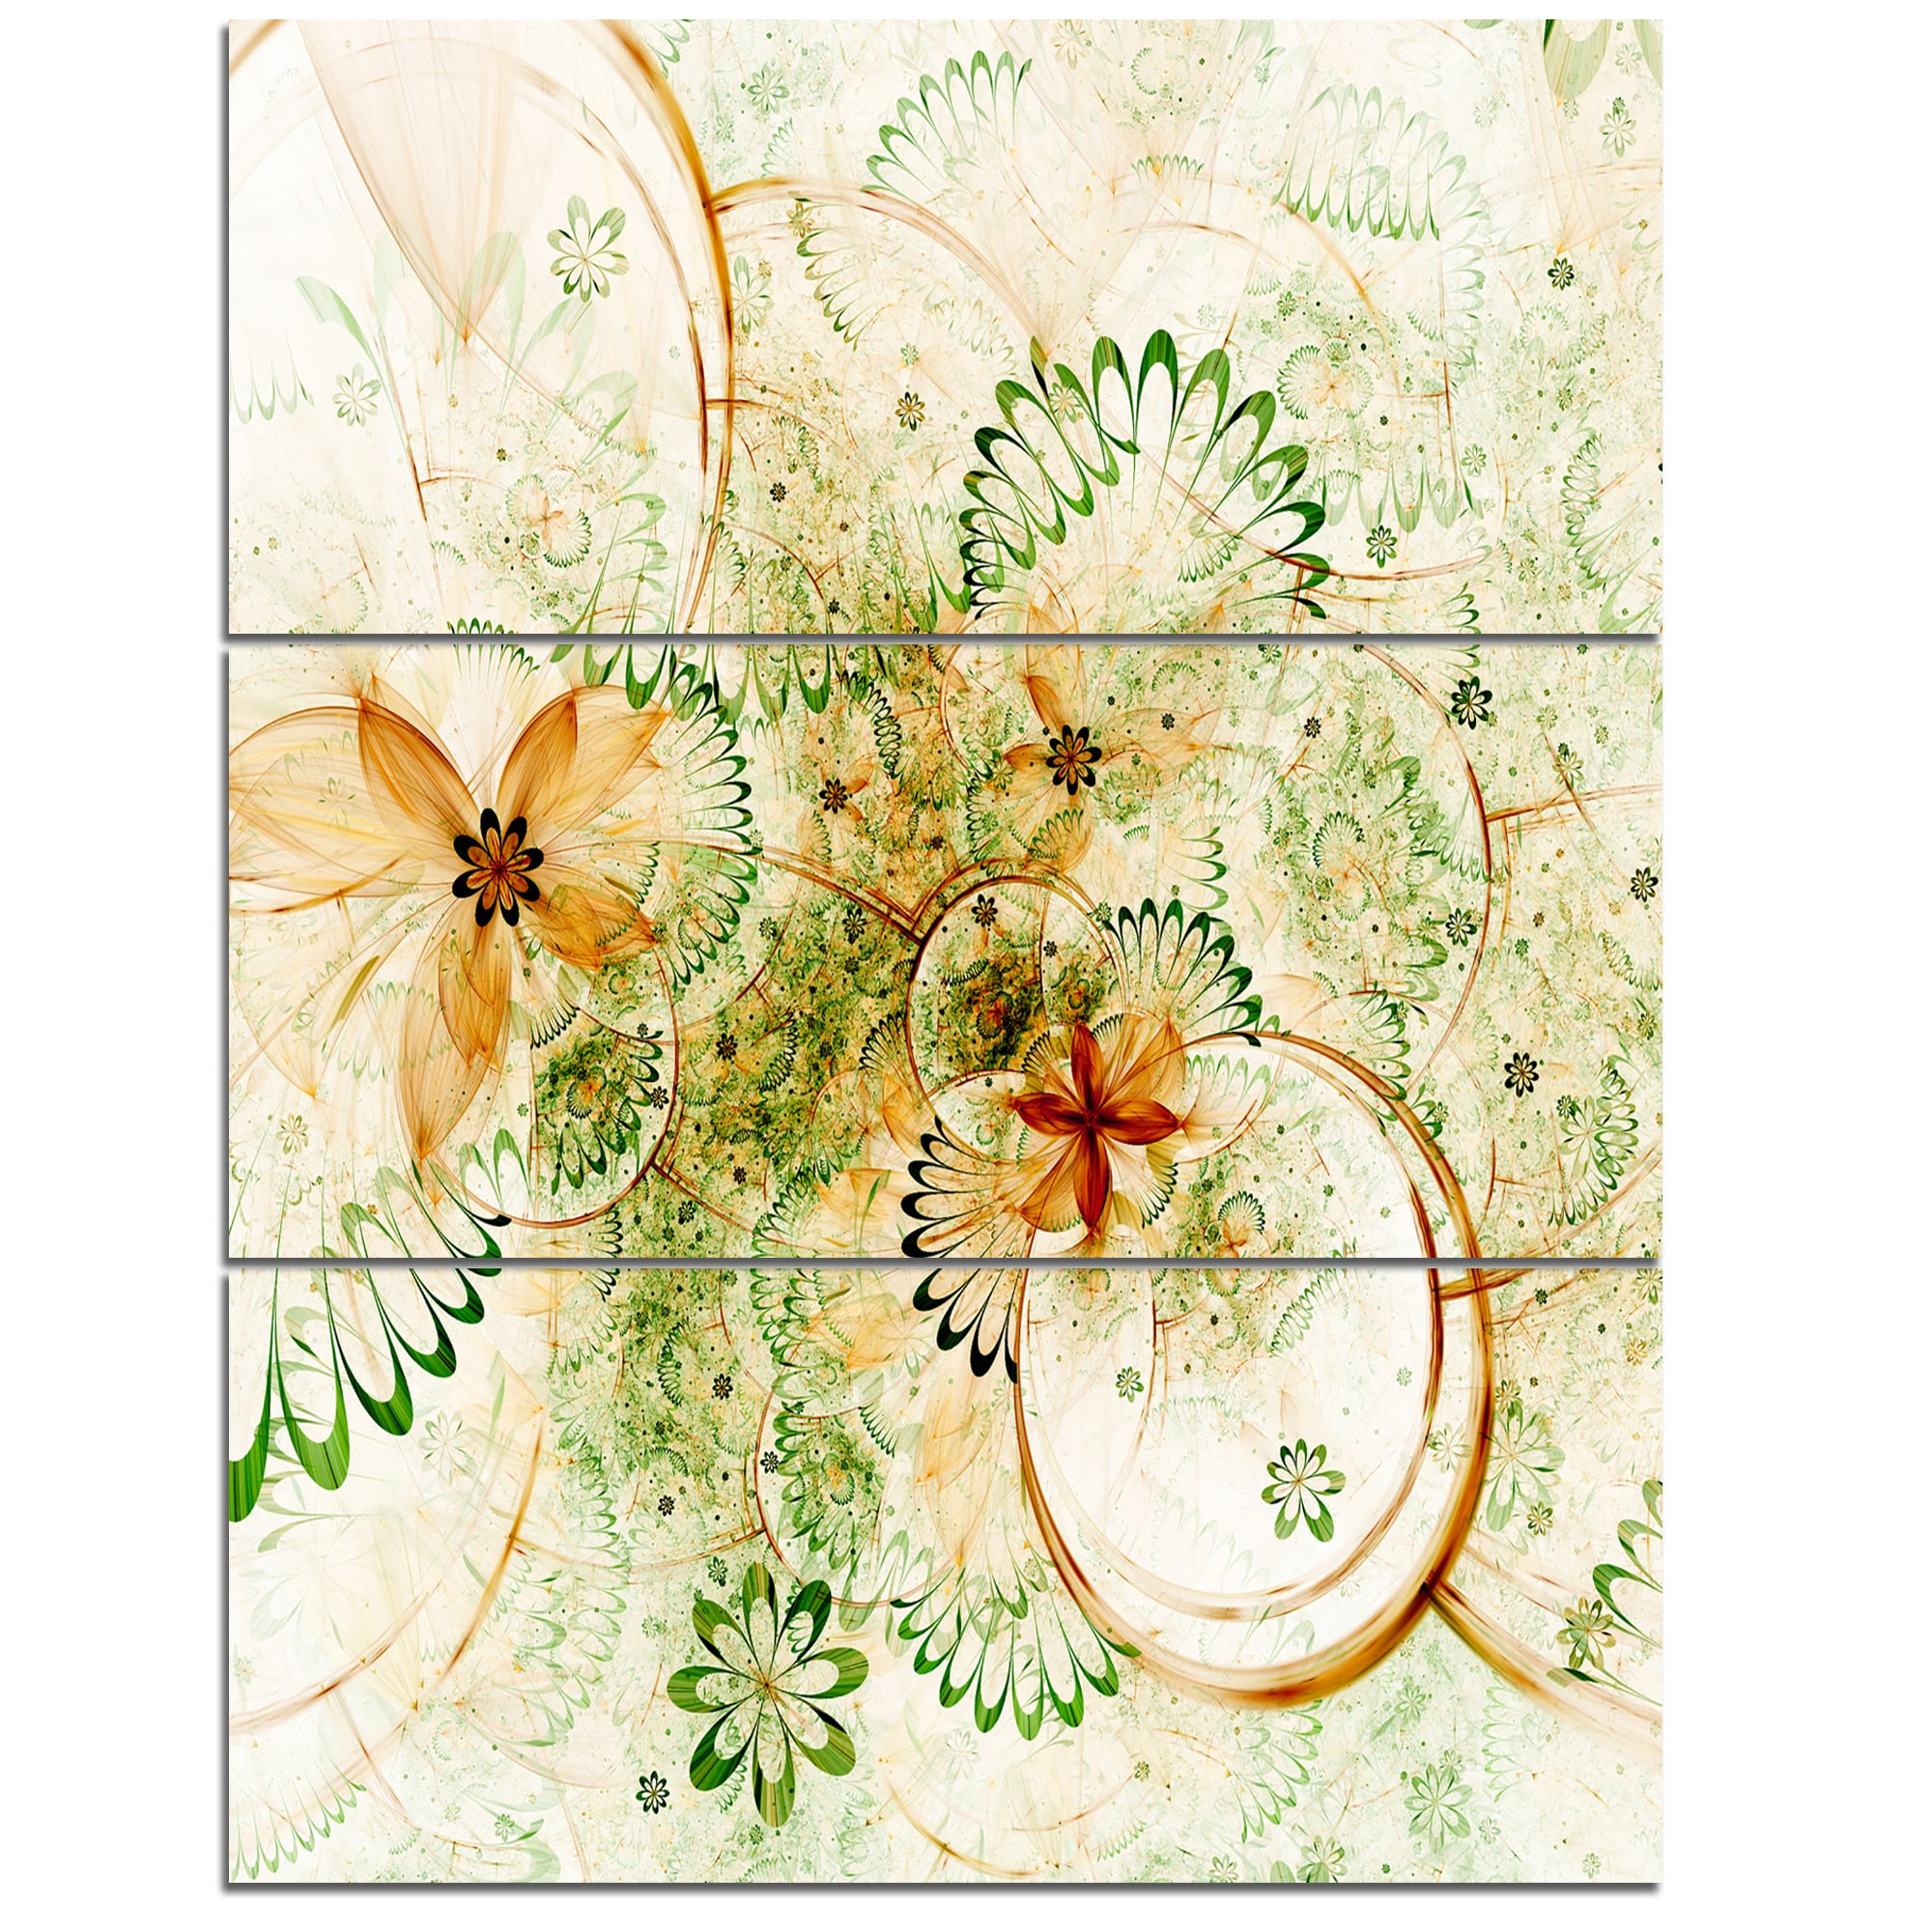 Stunning Floral Wall Art Canvas Pictures Inspiration - The Wall Art ...